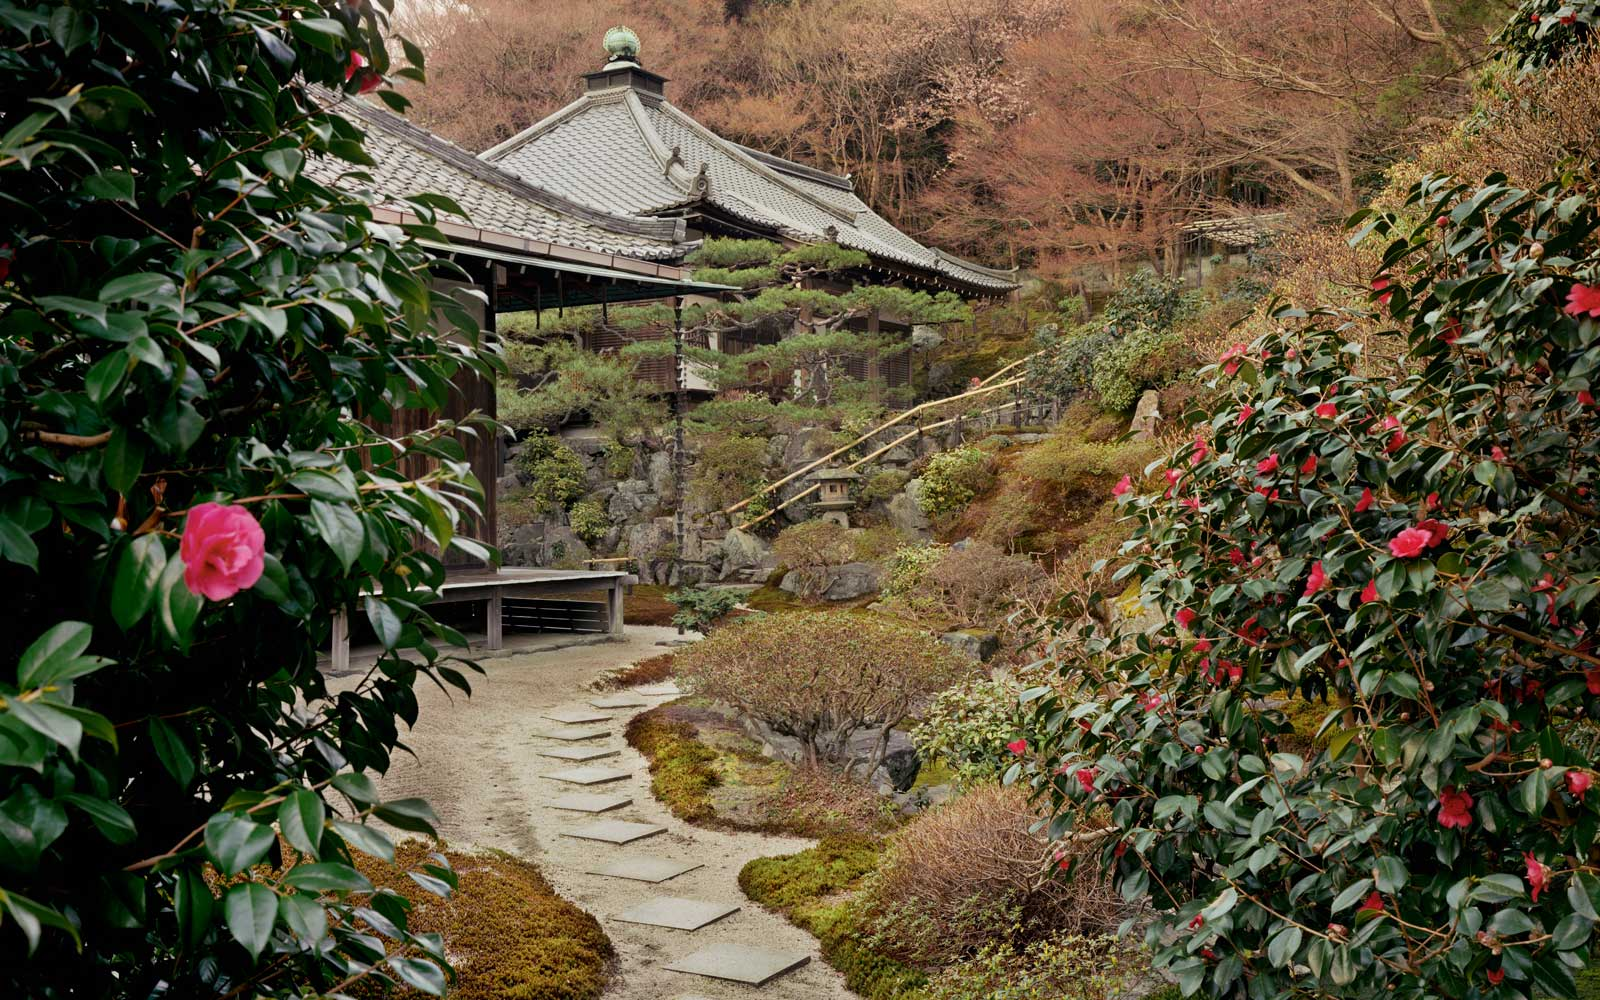 Spring camellia flowers in front of a temple, Reikan-Ji Temple, Kyoto Prefecture, Honshu, Japan